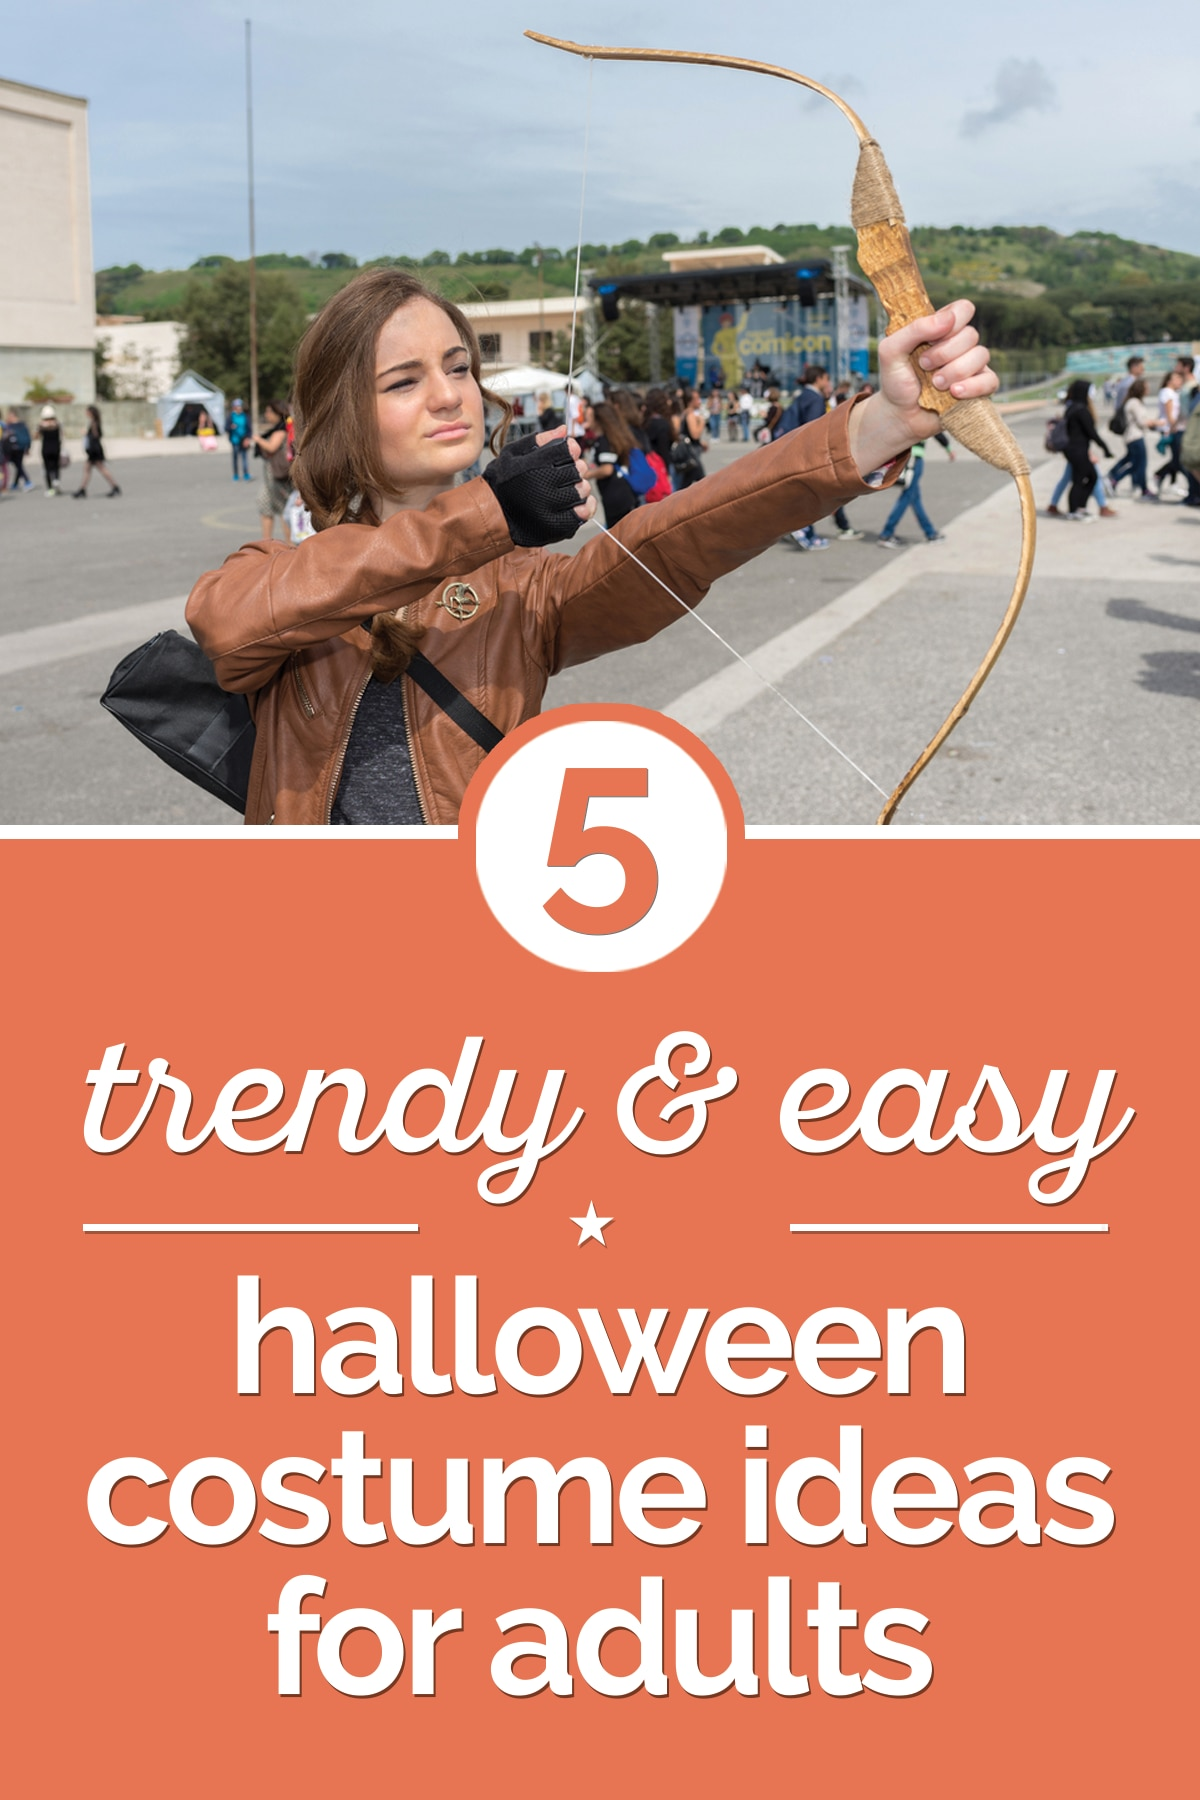 5 trendy easy halloween costume ideas for adults thegoodstuff 5 trendy easy halloween costume ideas for adults thegoodstuff solutioingenieria Choice Image